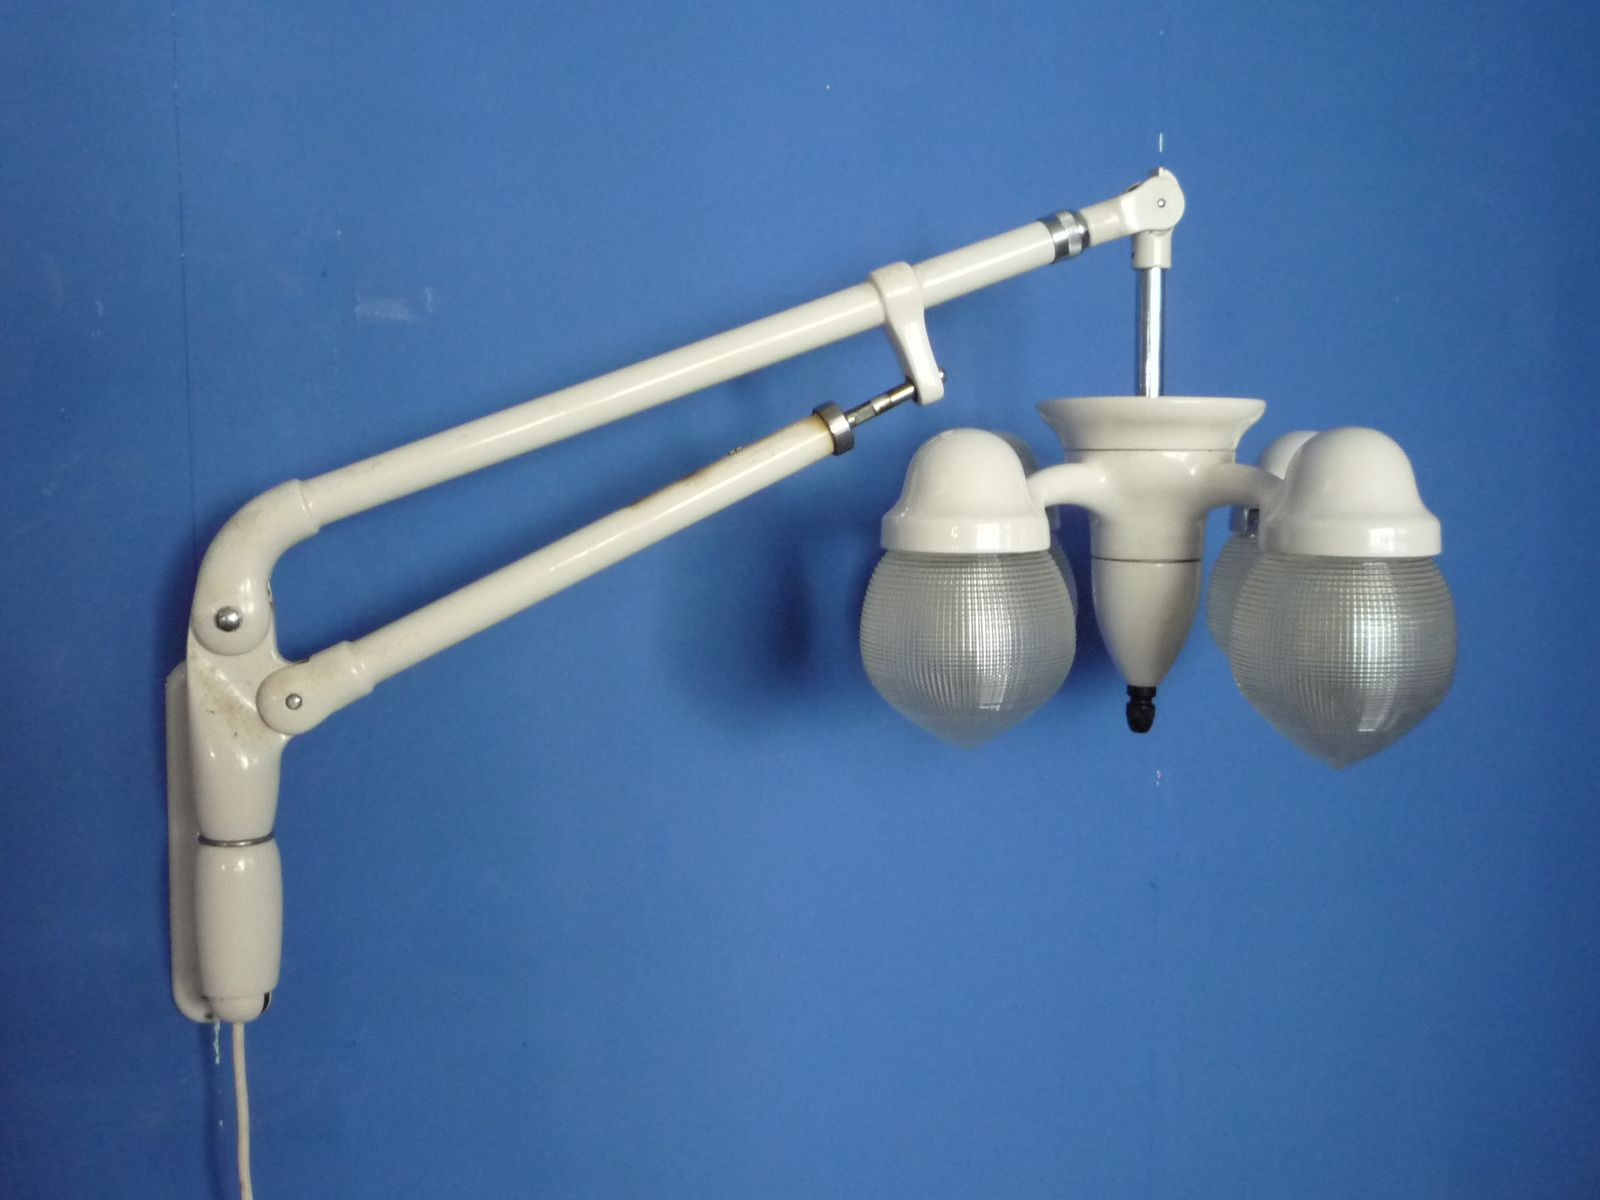 Metal Articulated Arm Wall Lamp, 1930s for sale at Pamono